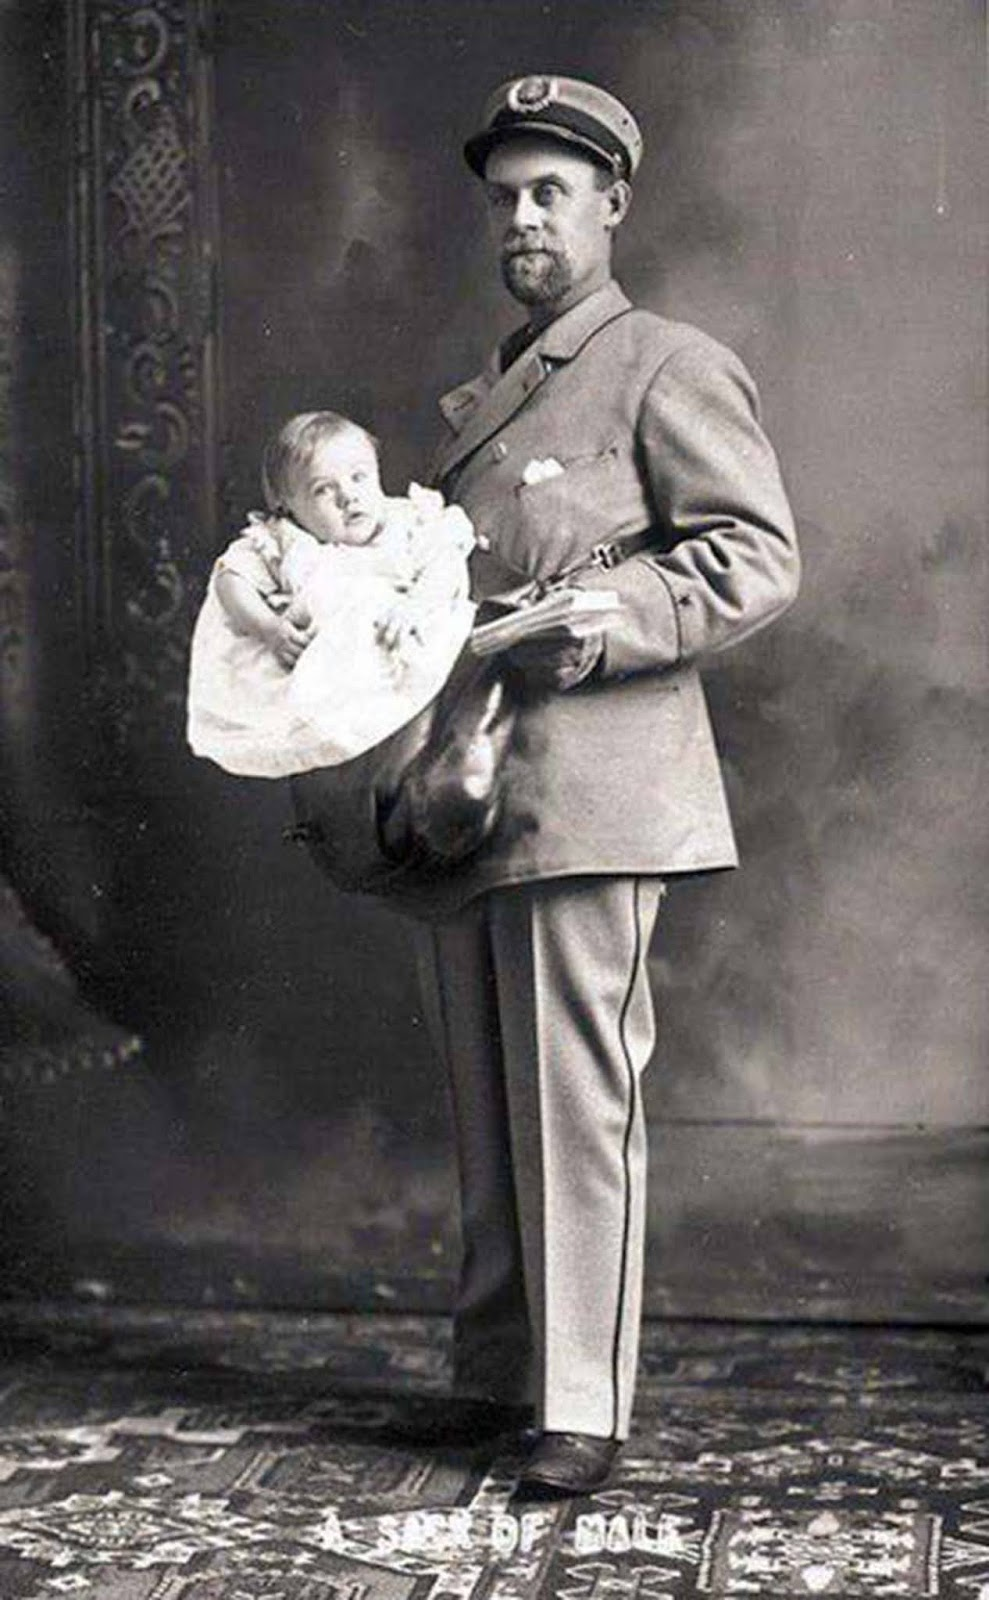 A US postman carrying a baby boy along with his letters, USA. 1900s.